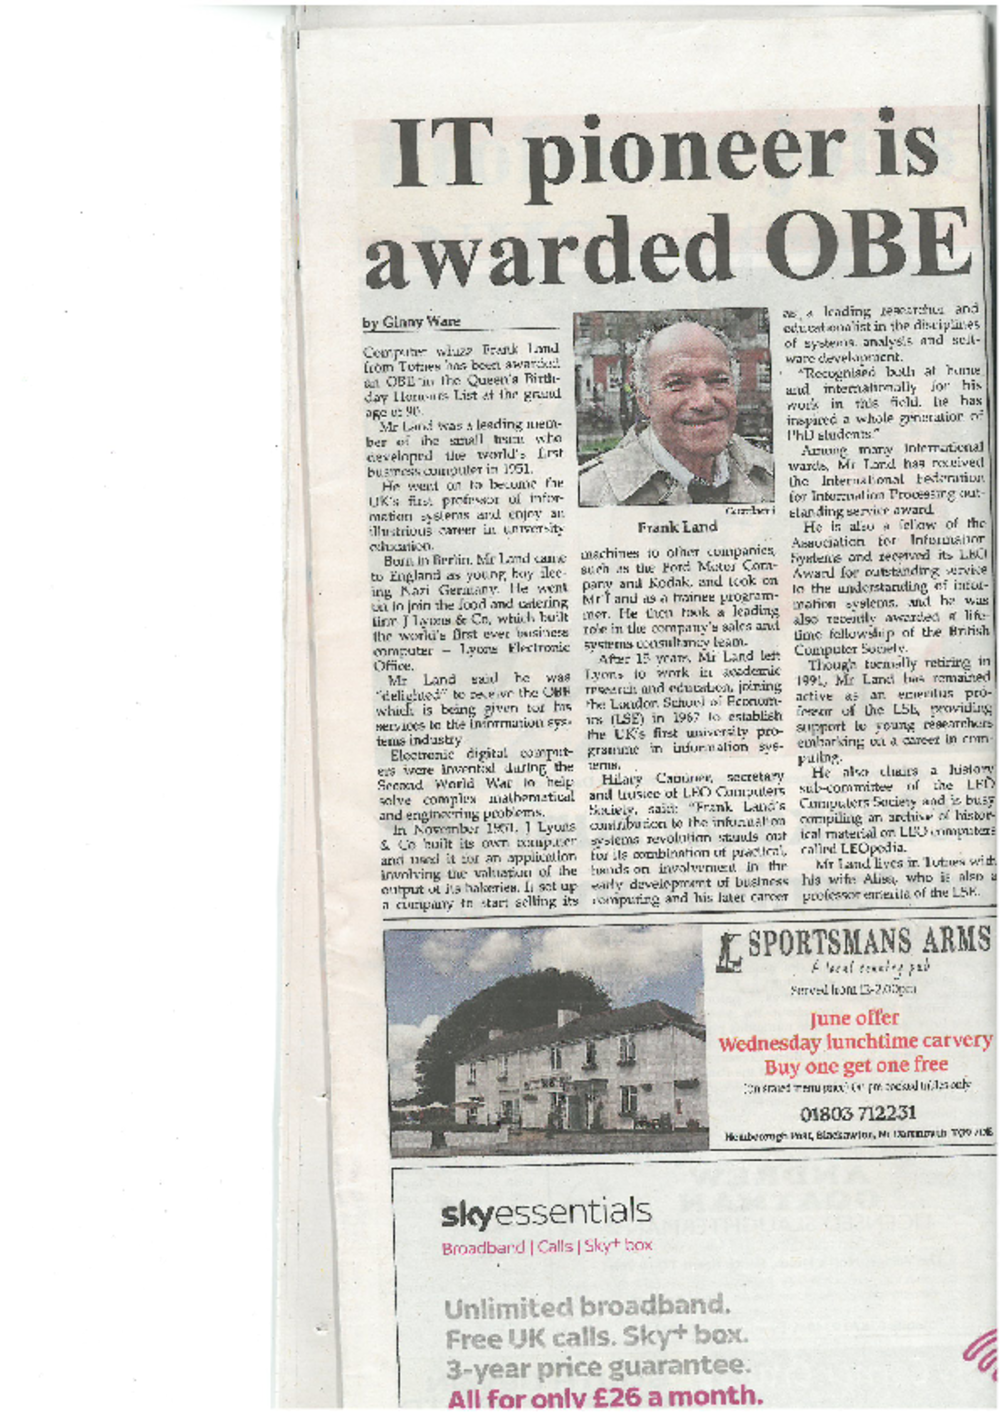 Article: IT pioneer is awarded OBE